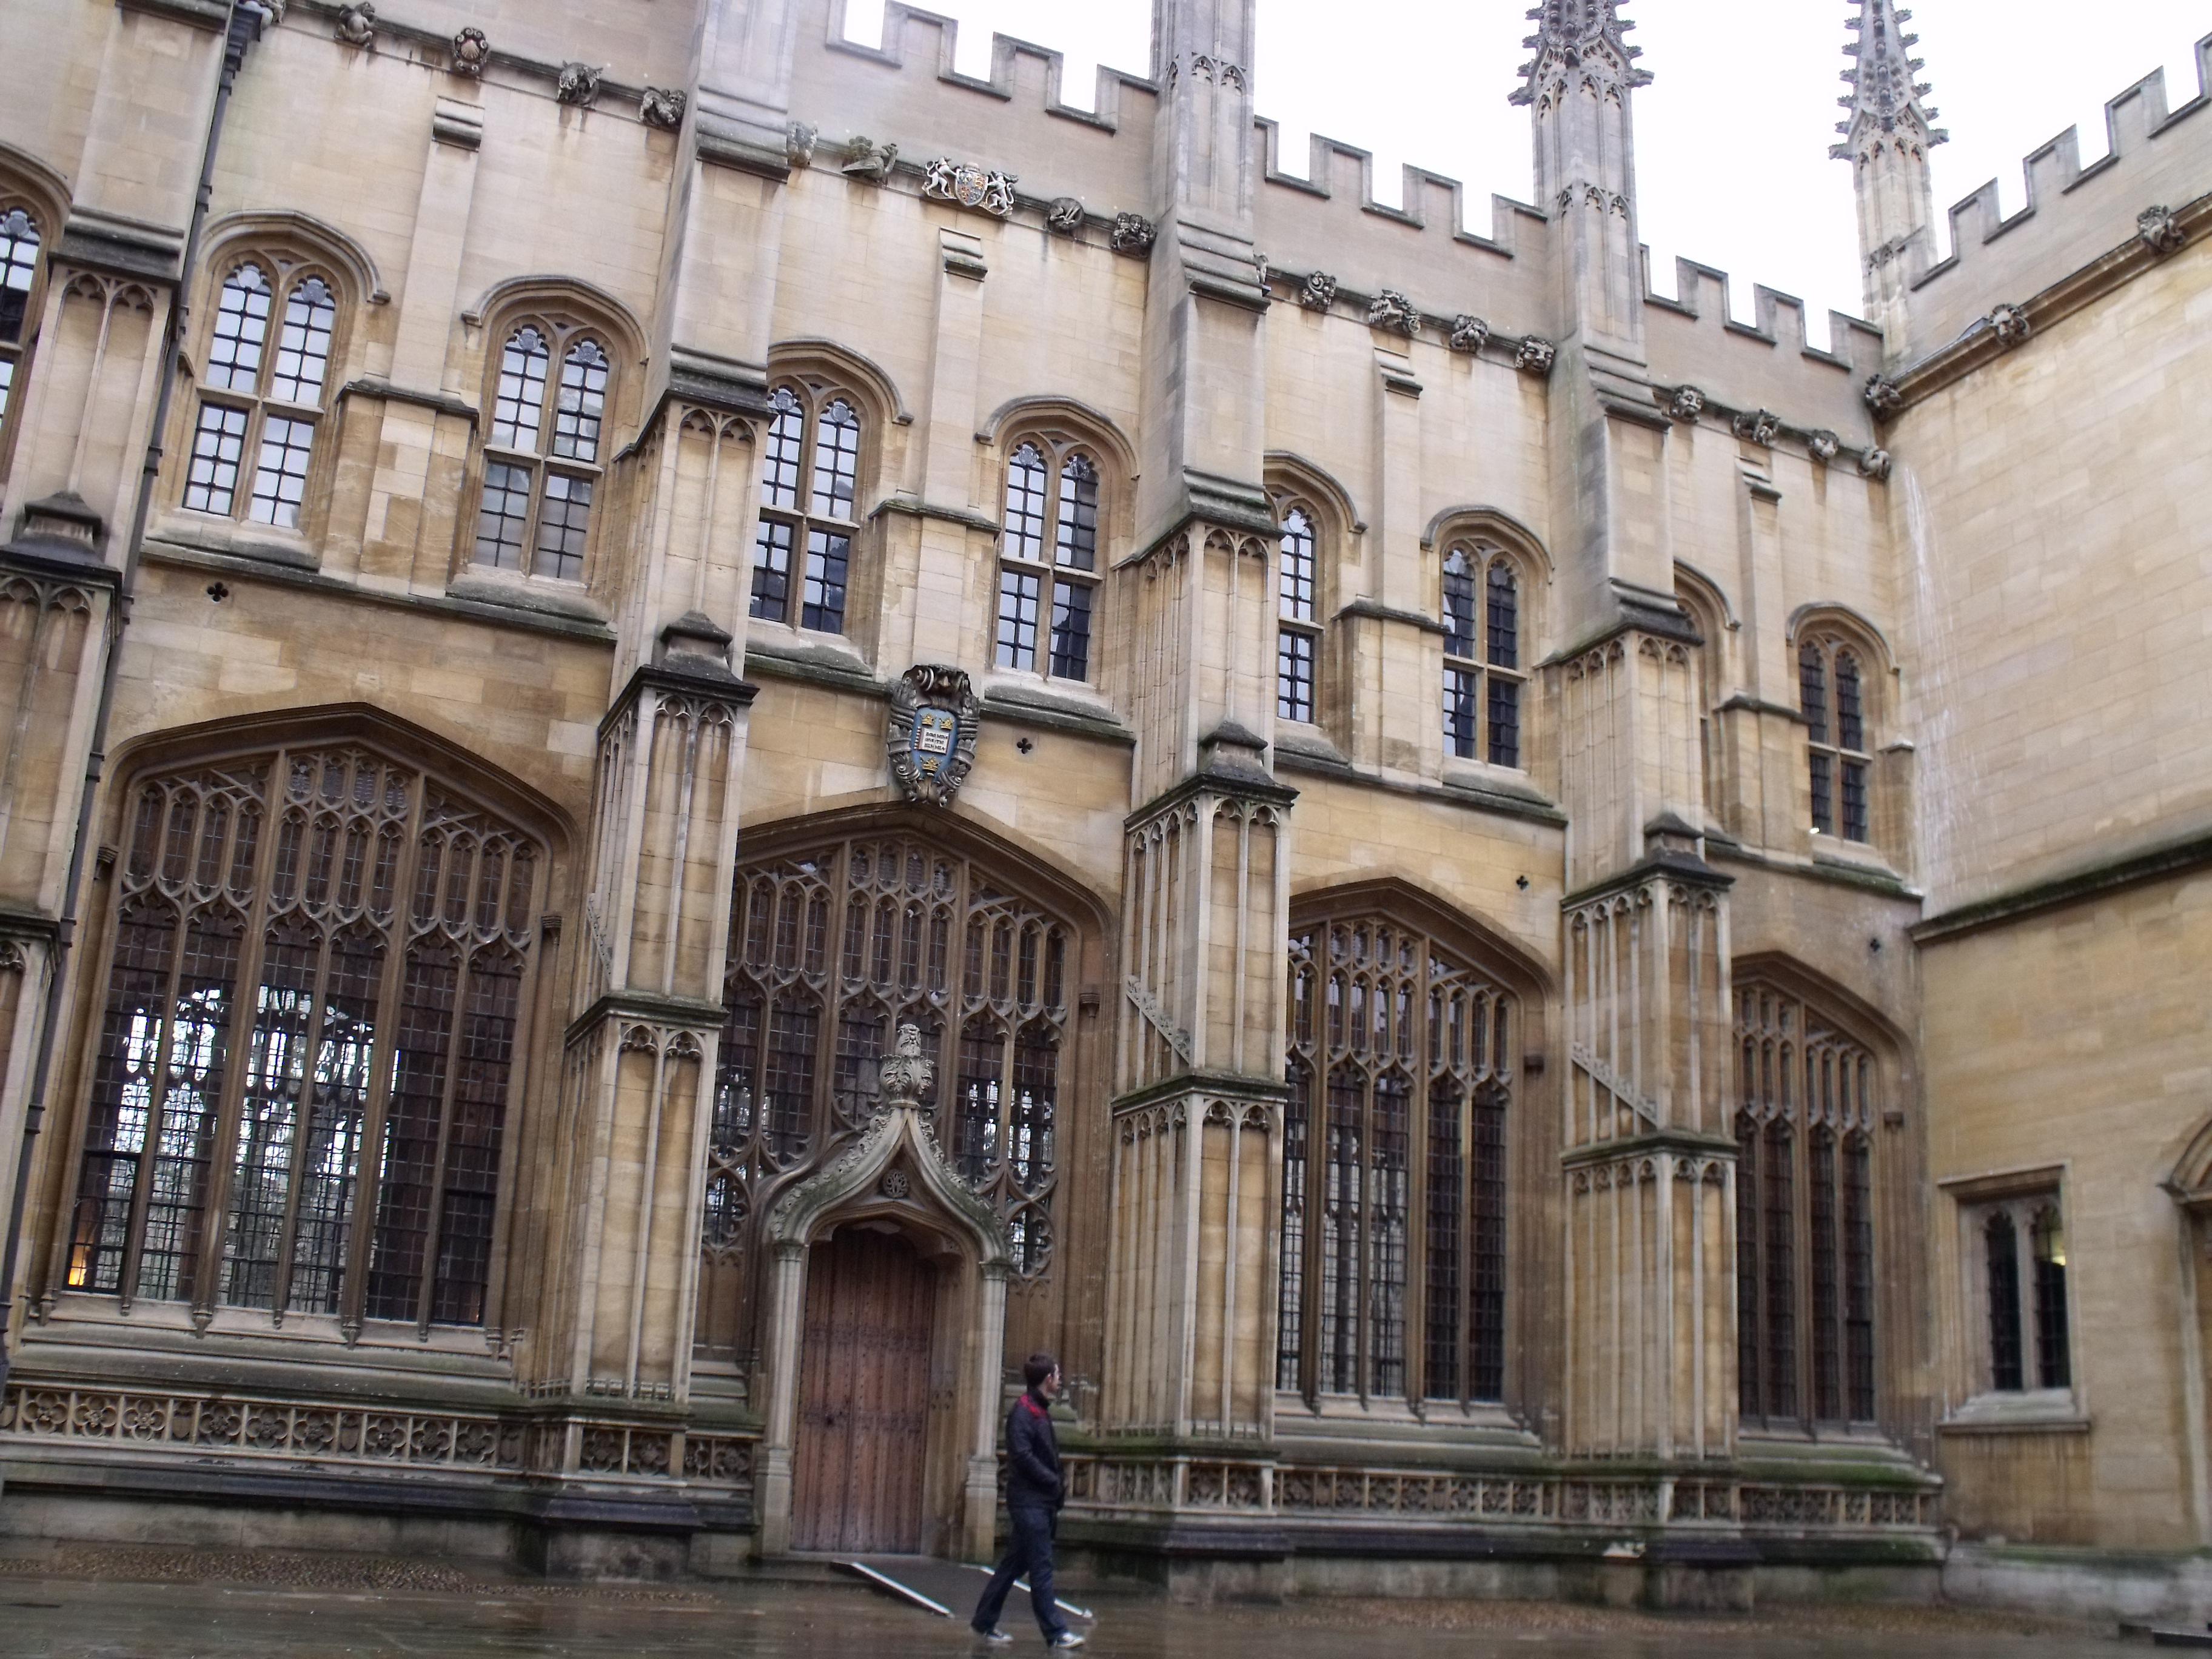 The University of Oxford's magnificent Bodleian Library buildings